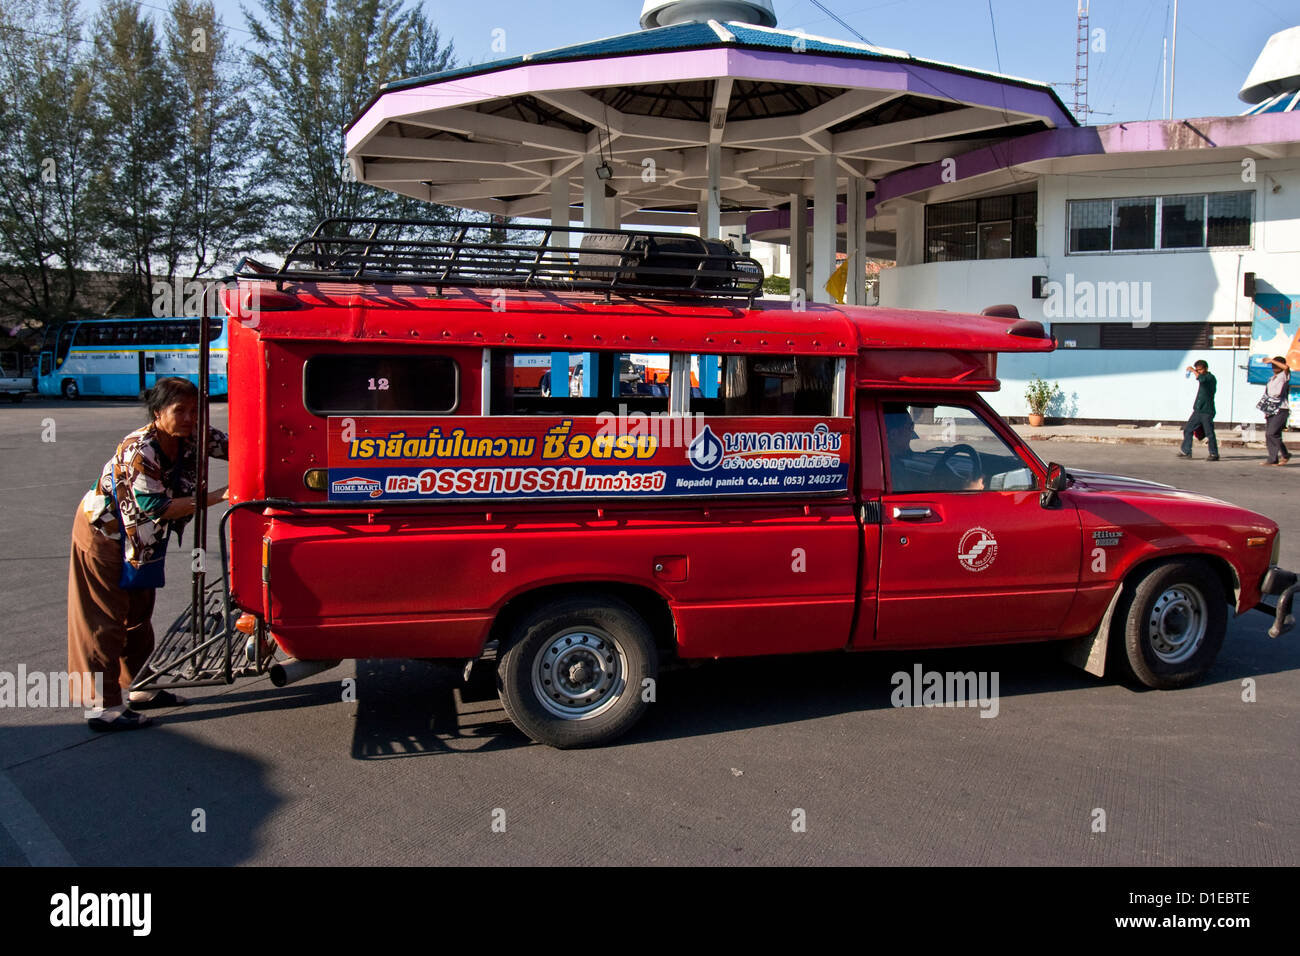 Traditional Red Songthaew Taxi, Chiang Mai Bus Station, Thailand - Stock Image